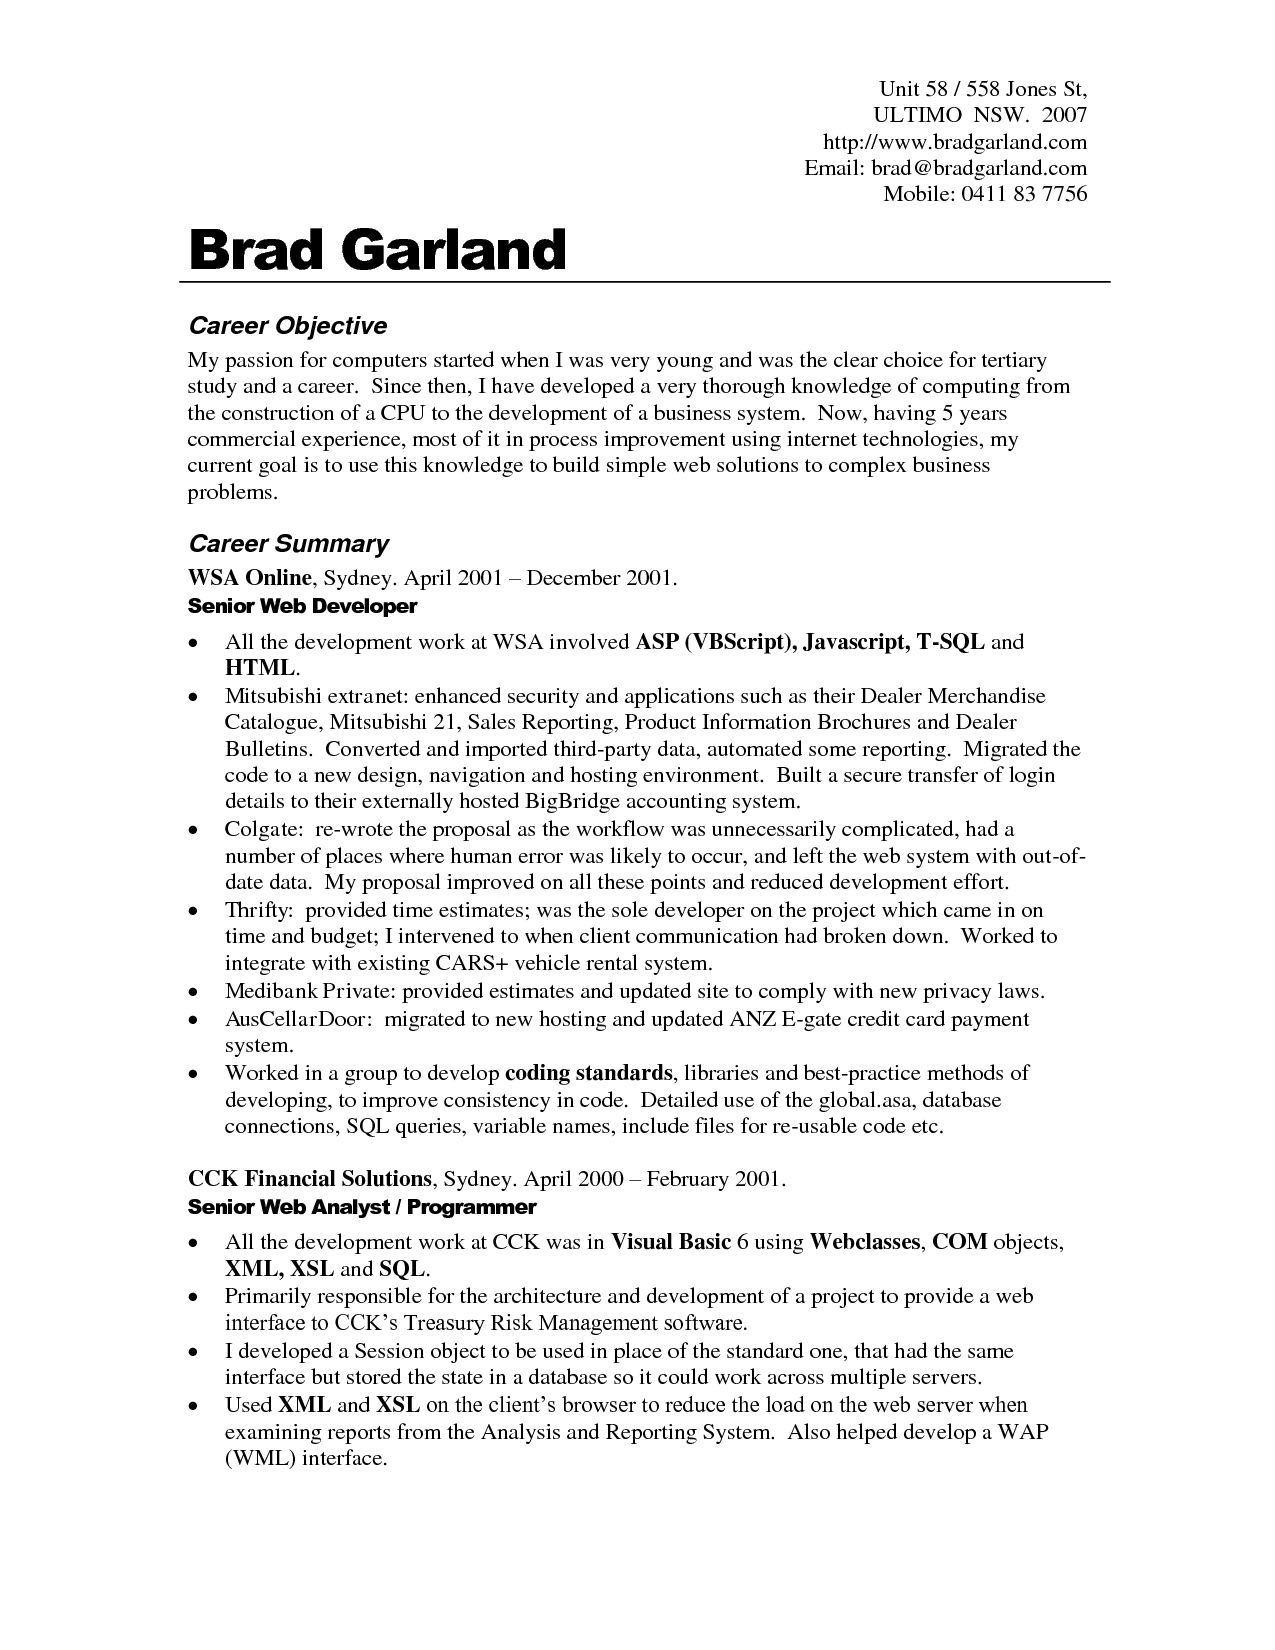 Objective Of Resume Sample Resume Action Verbs For Lawyers Formatting Back Post